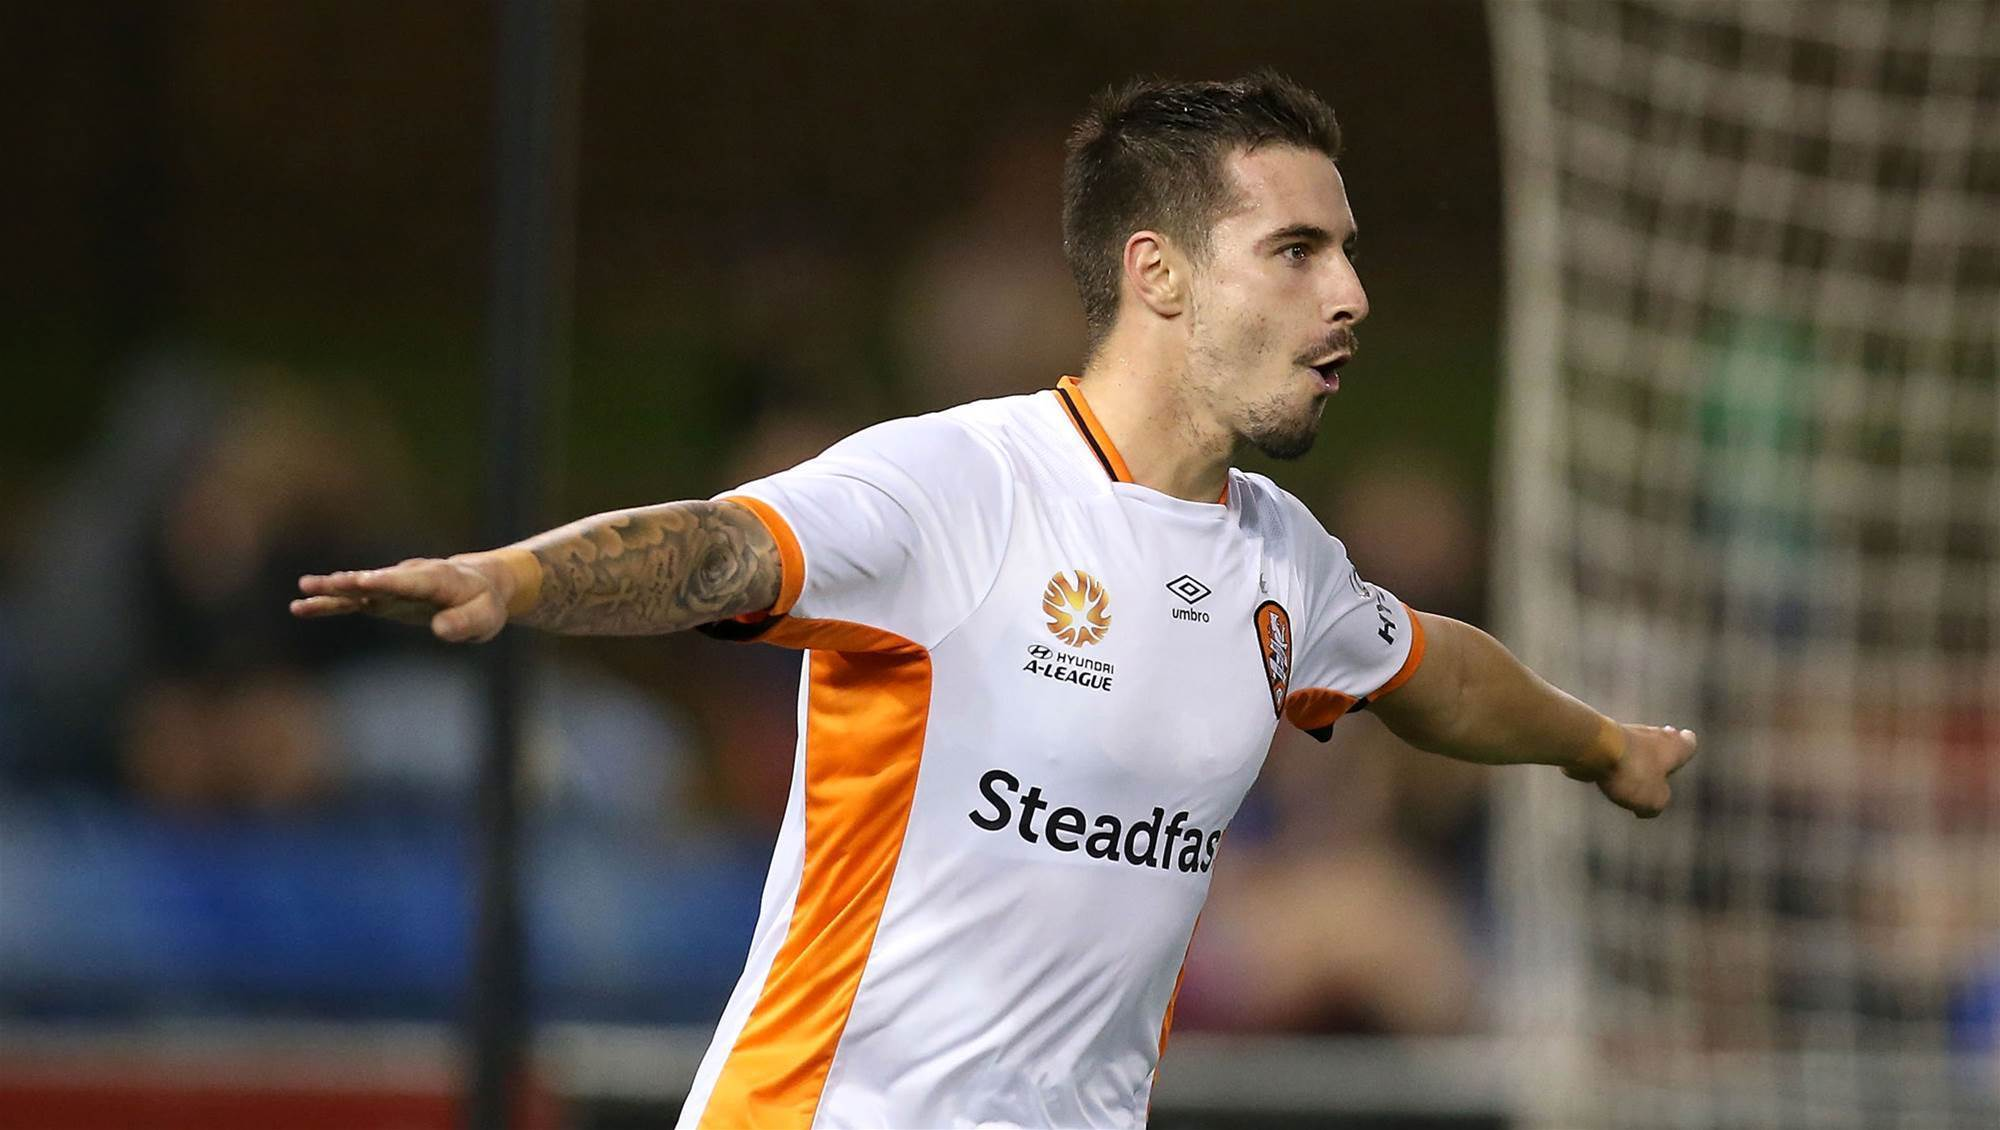 Maclaren: I'm back on track